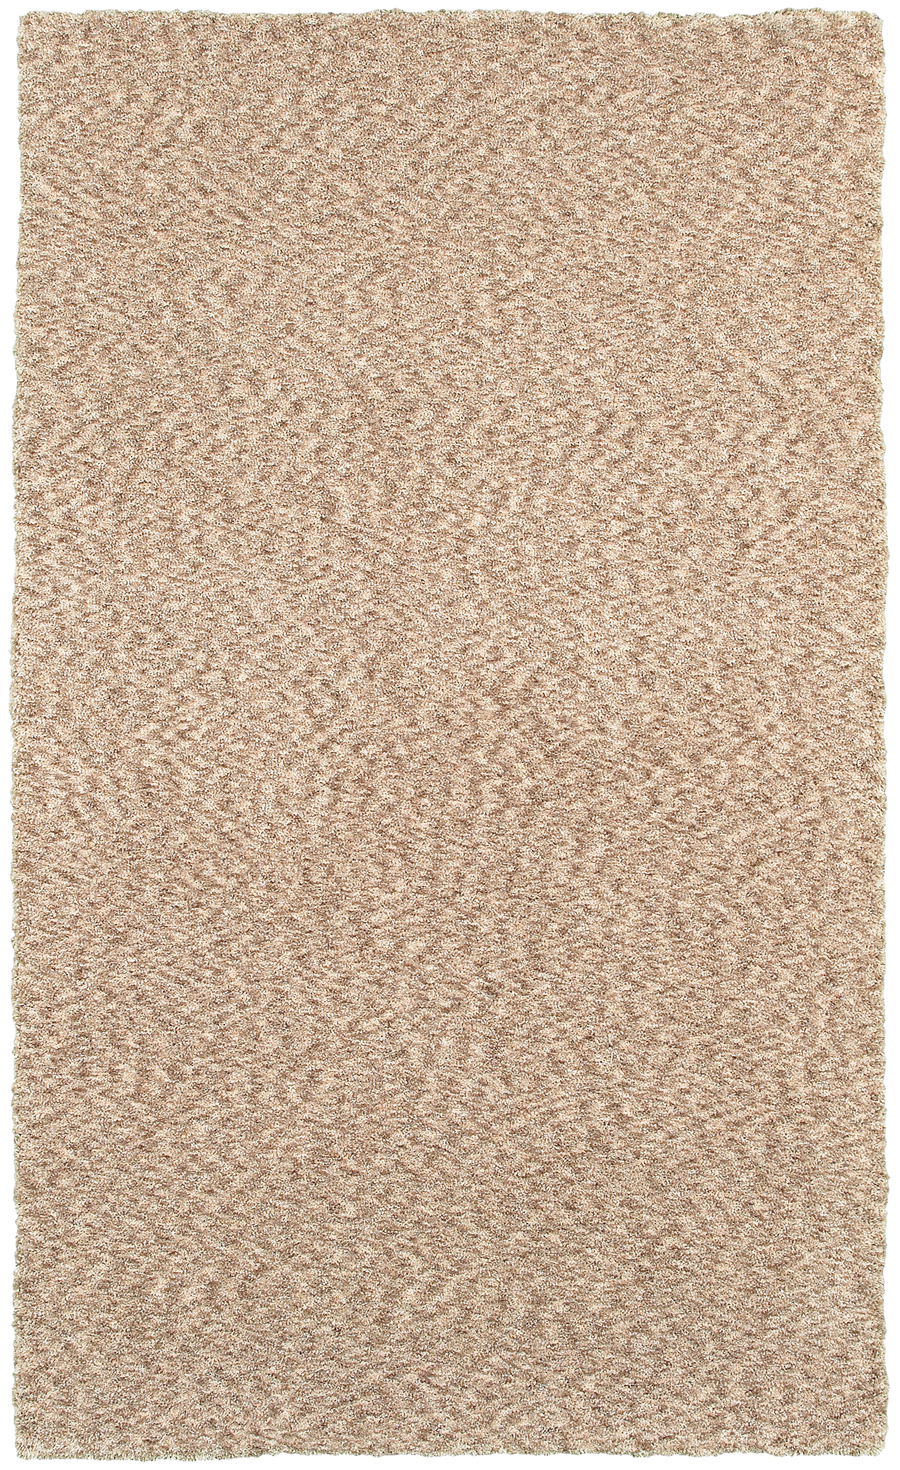 Oriental Weavers Sphinx Heavenly 73401 Rug